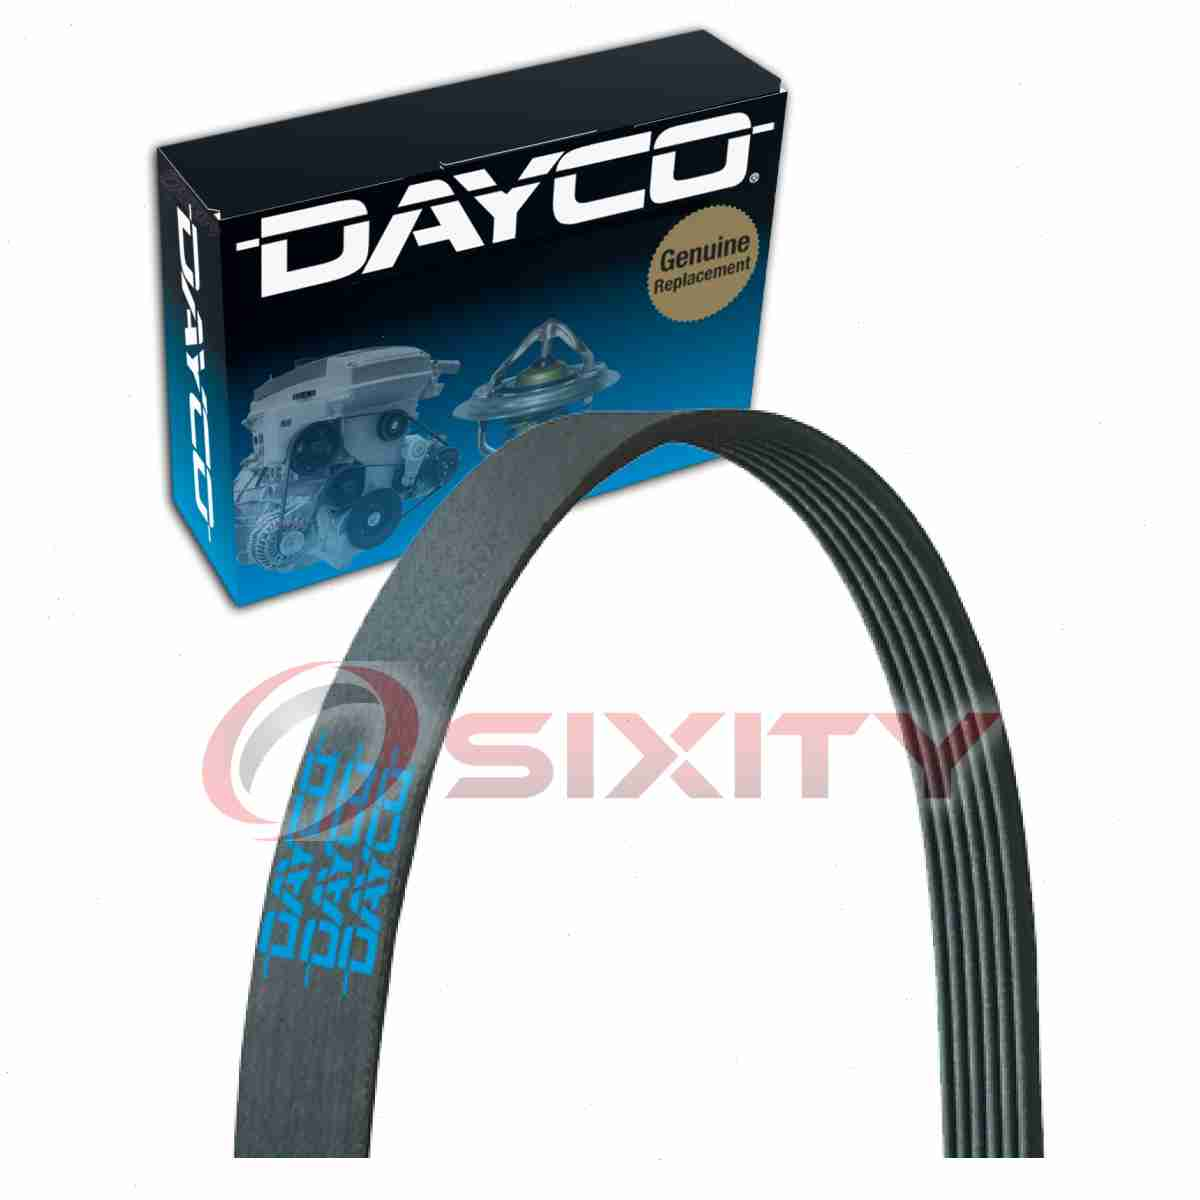 medium resolution of built for passenger cars and light duty trucks the extensive line of dayco poly rib serpentine belts are engineered for high mileage demanding drives